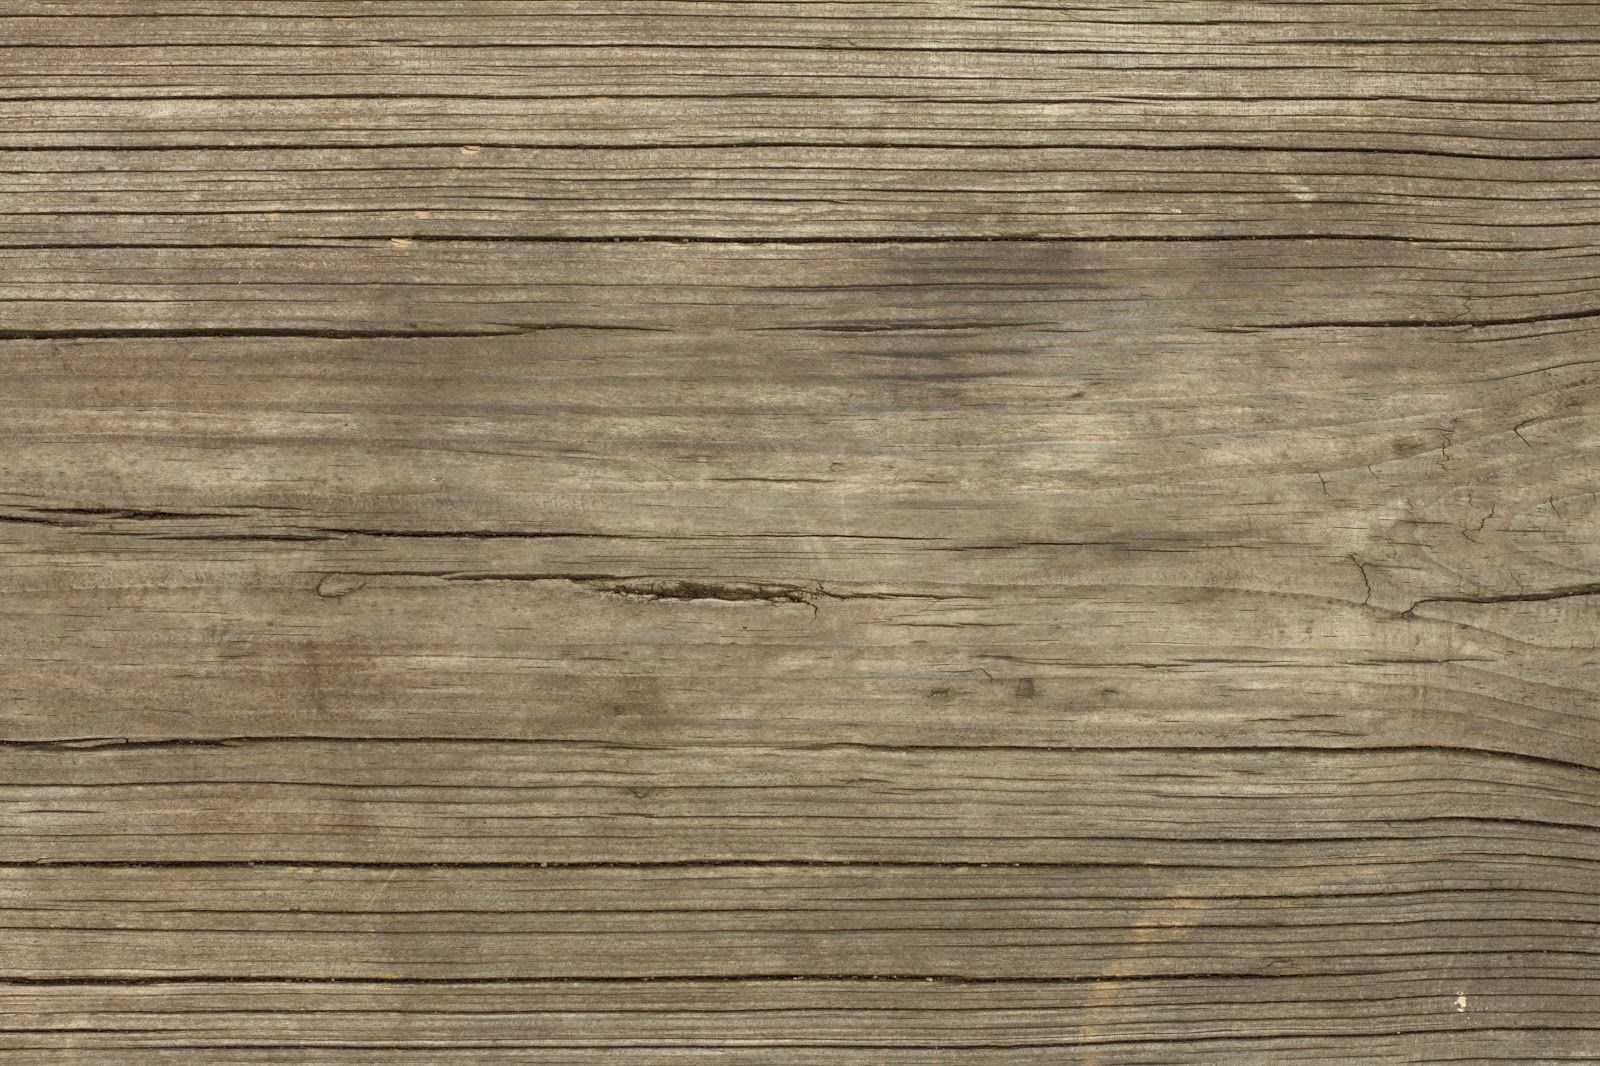 single wood plank texture seamless wwwimgkidcom the